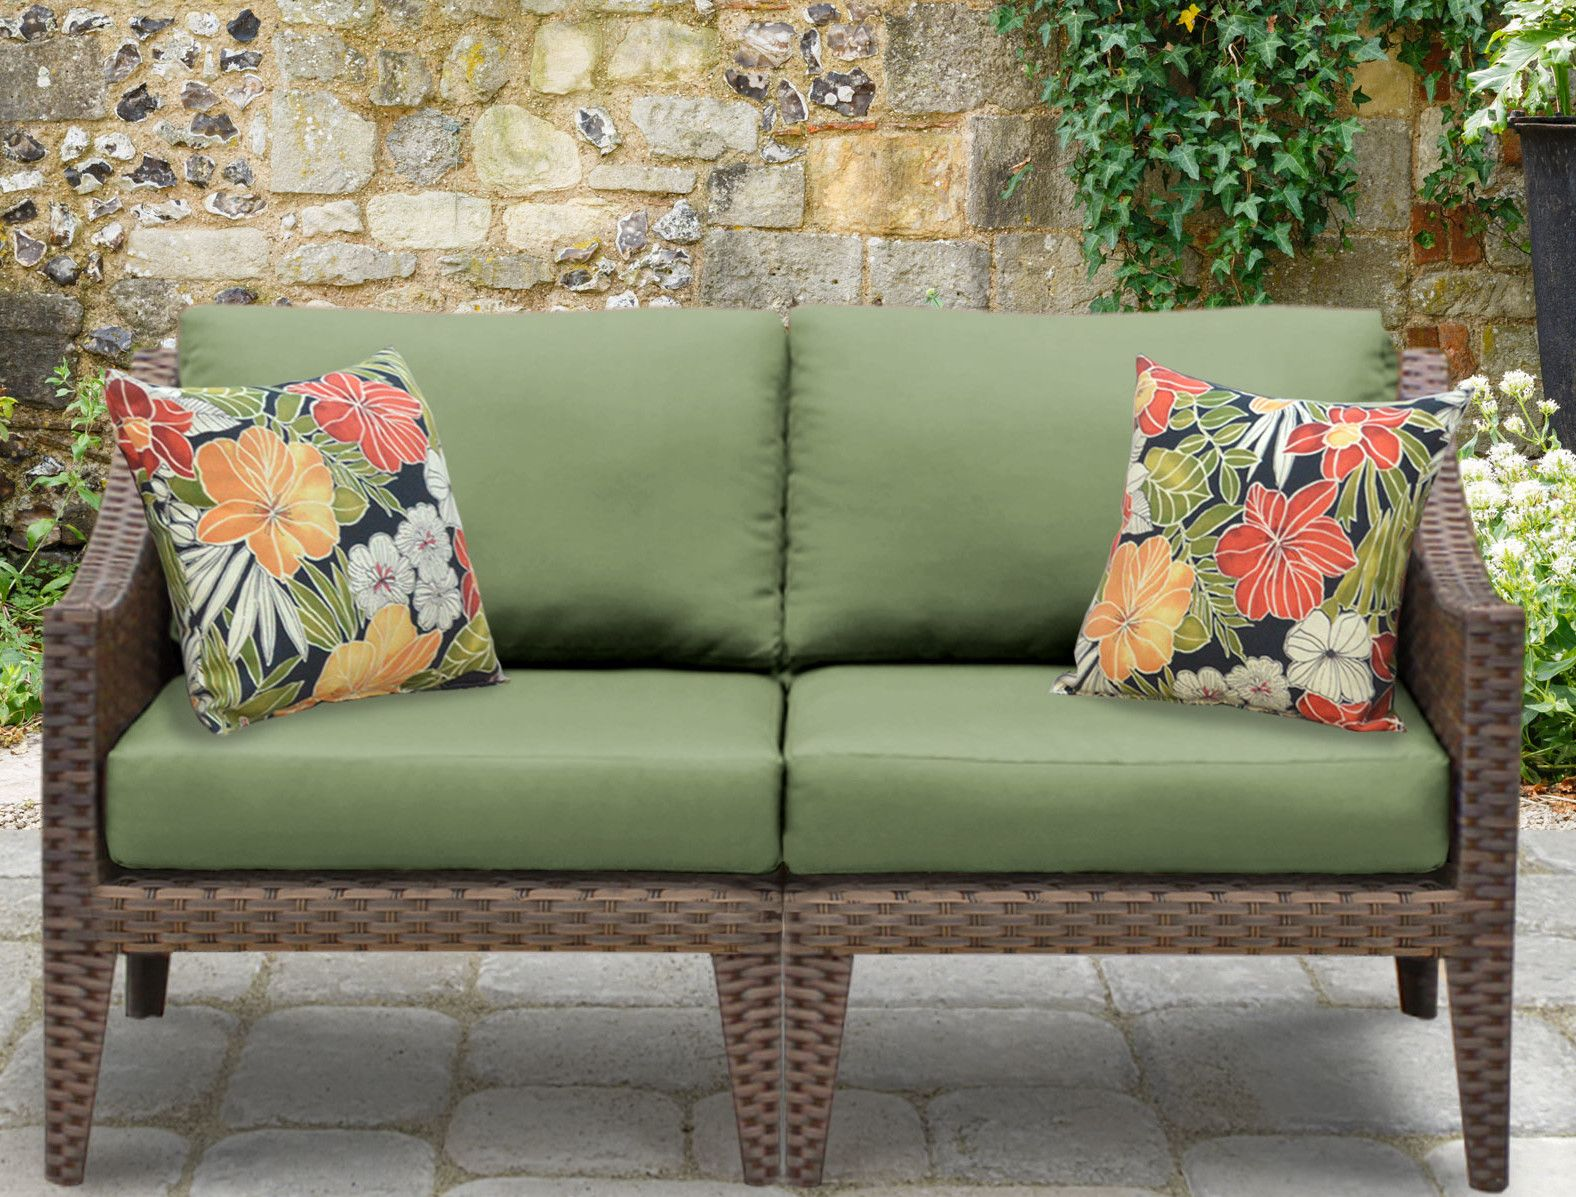 Manhattan Outdoor Wicker Loveseat With Cushions Patio Seating